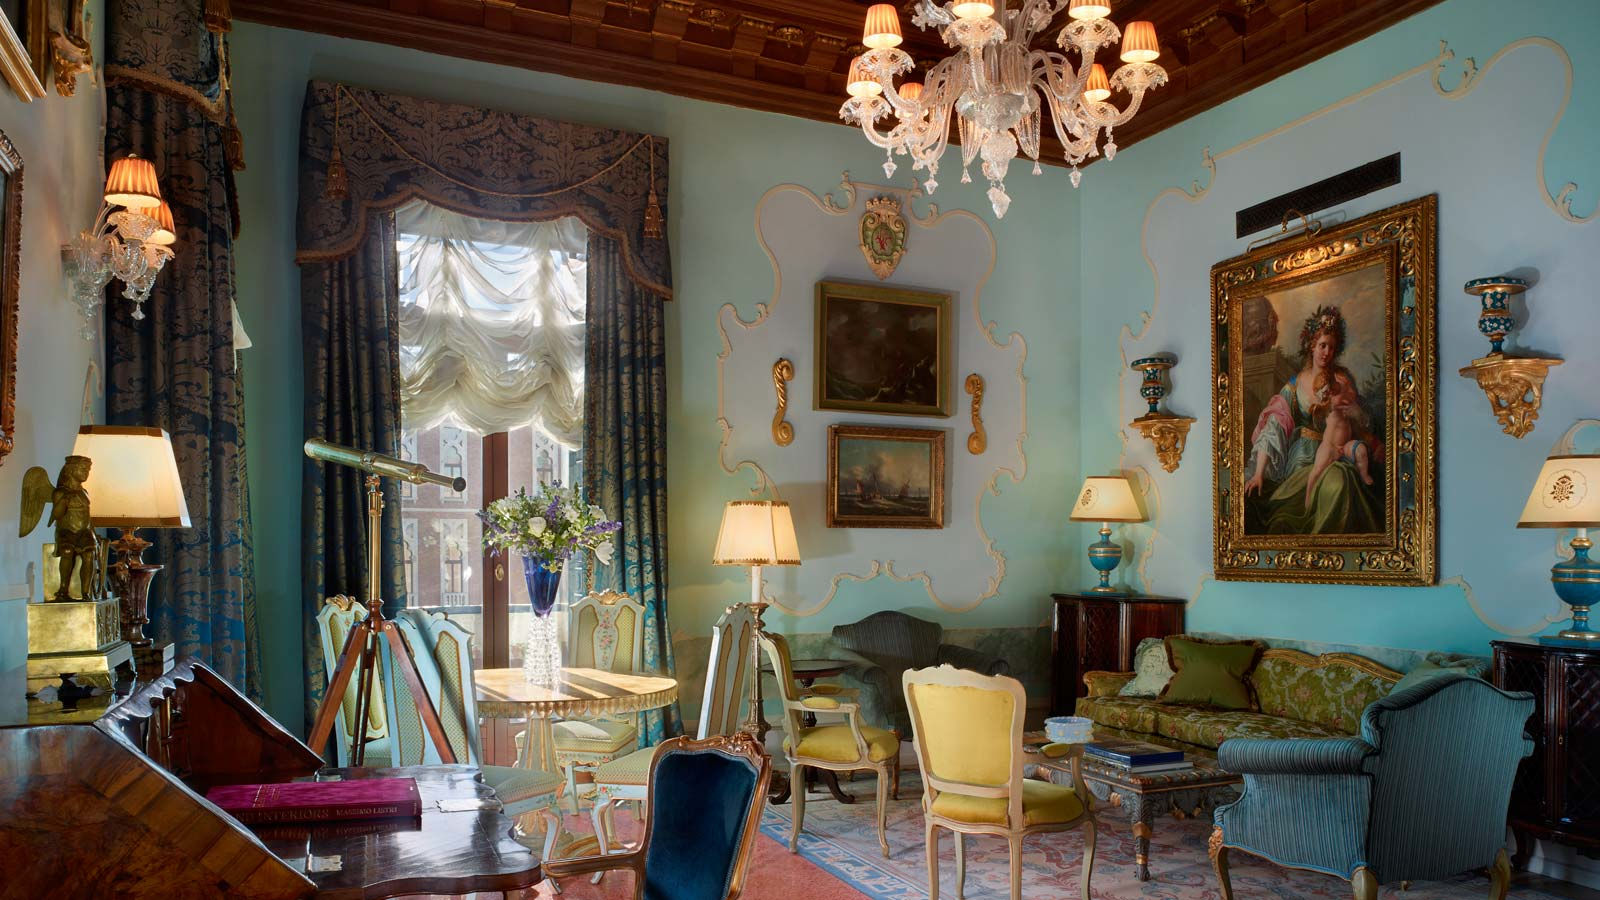 The Gritti palace patrons luxury suite